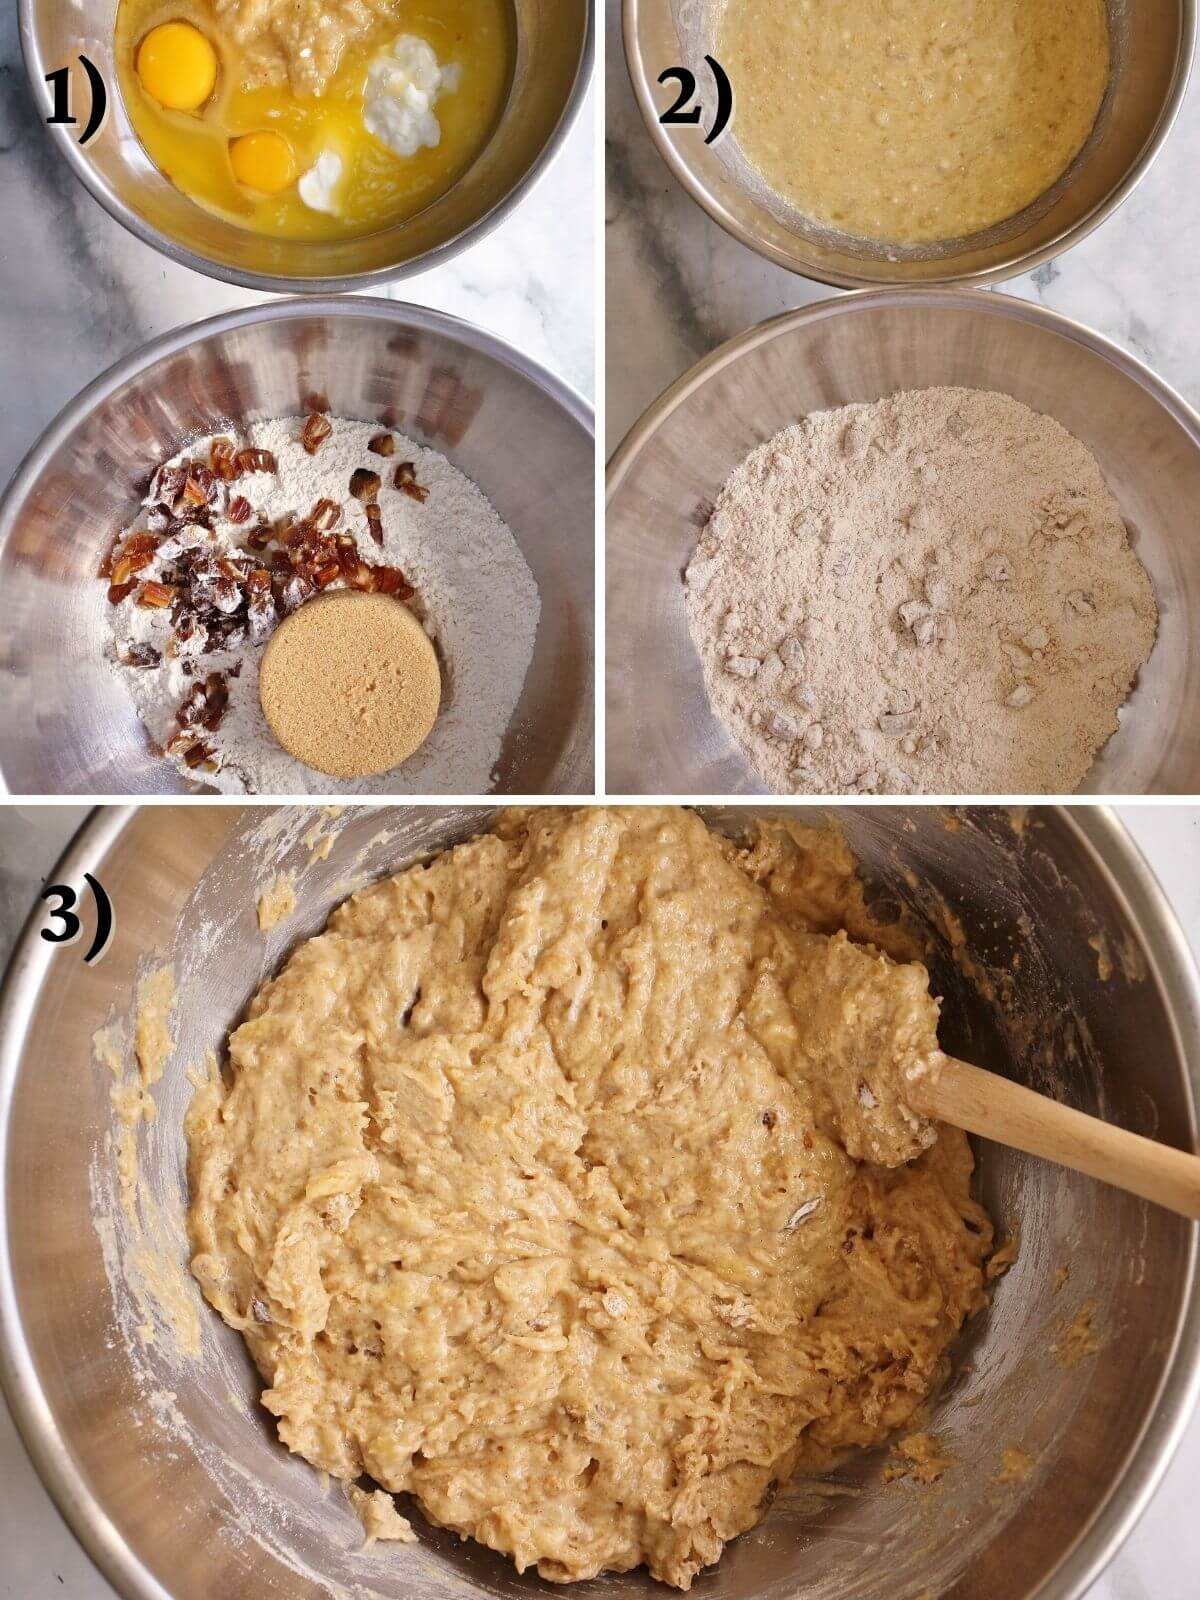 Step by step photos of mixing banana bread batter in metal bowls.